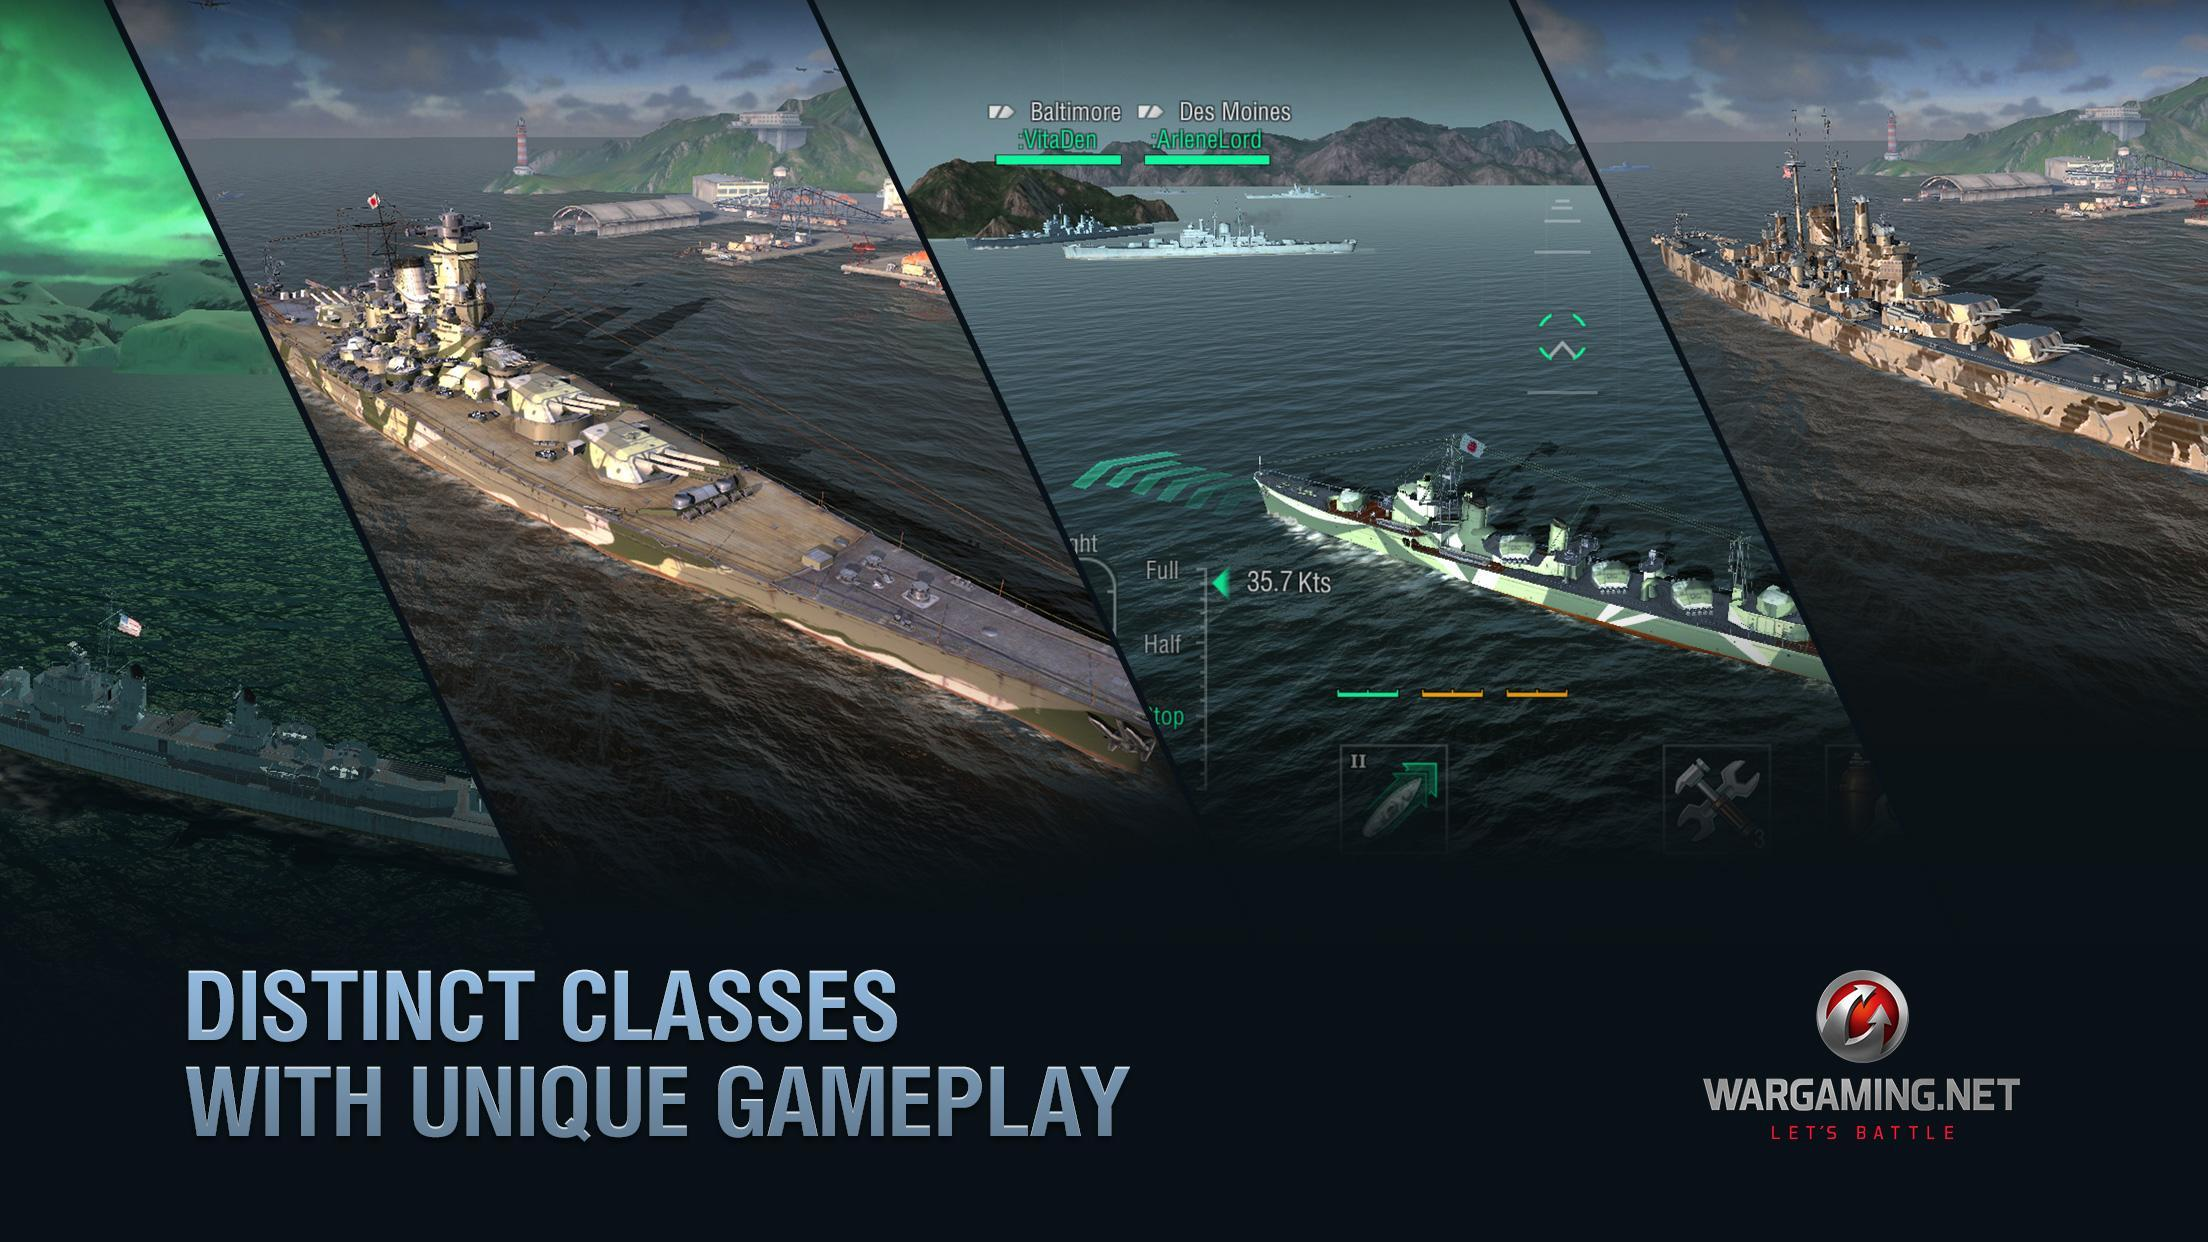 World of Warships Blitz: Gunship Action War Game 3.3.0 Screenshot 3